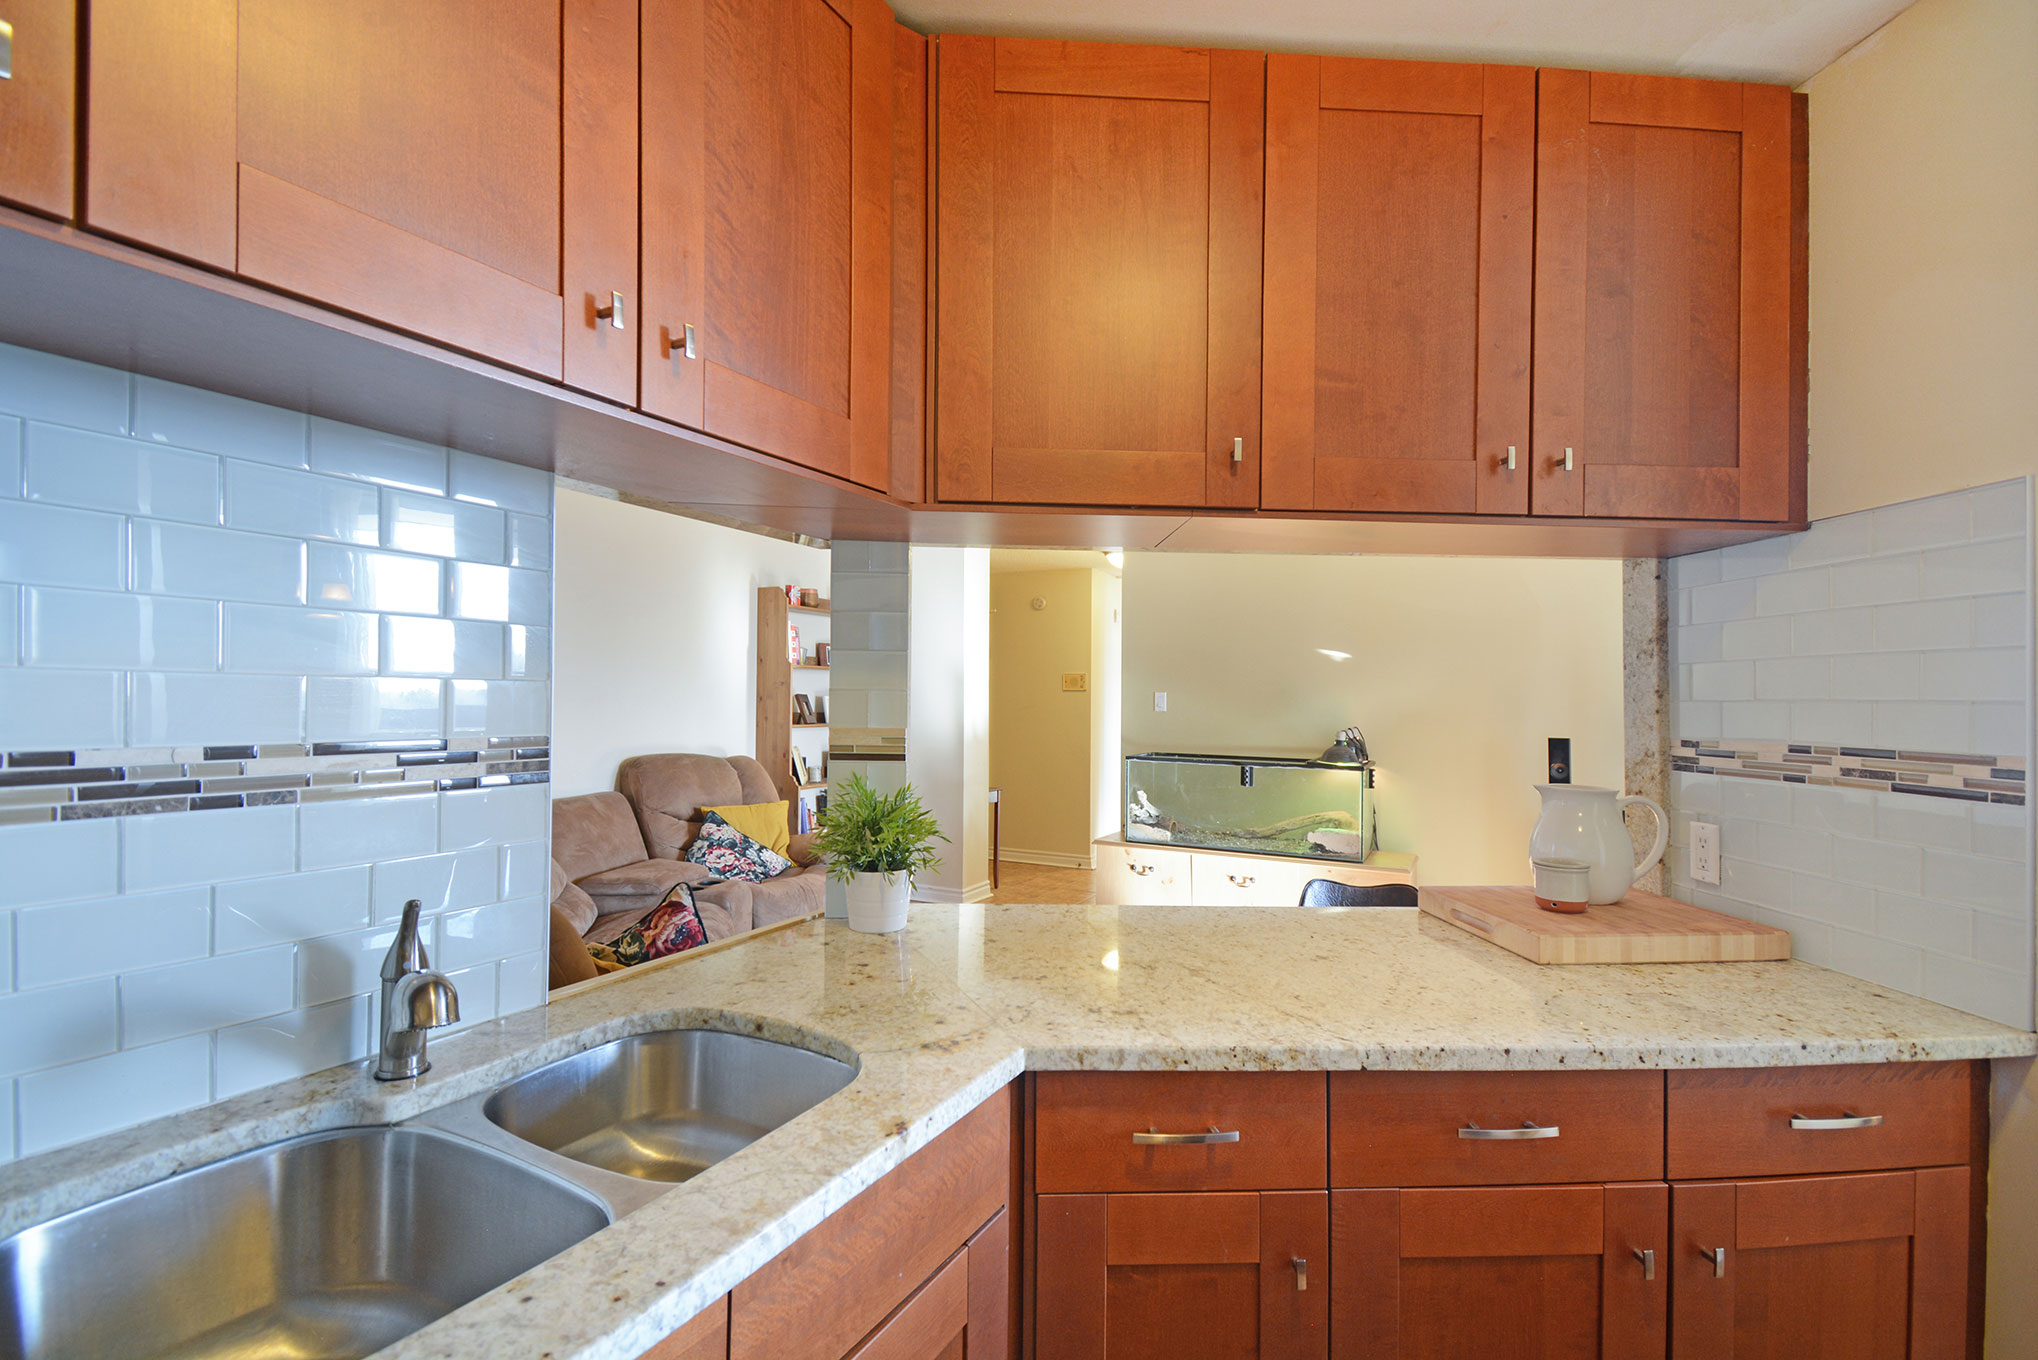 Beautiful kitchen with granite counters, tiled backsplash, stainless steel appliances and ceramic flooring.